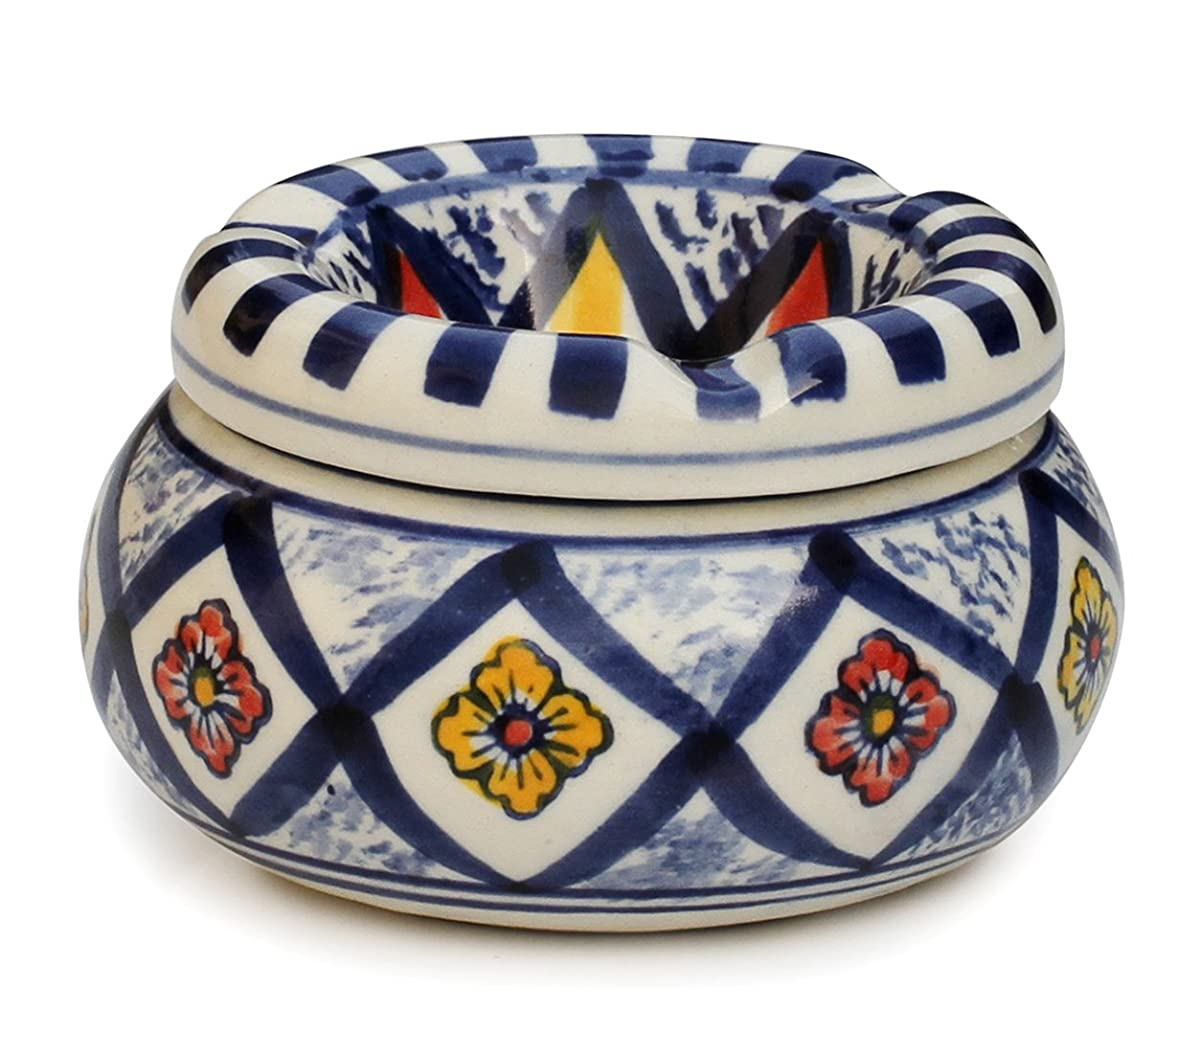 Smokeless Ashtray - SouvNear Moroccan Round Ceramic Ashtray with Lid for Outdoors and Indoors with 3 Cigarette Holder Slots